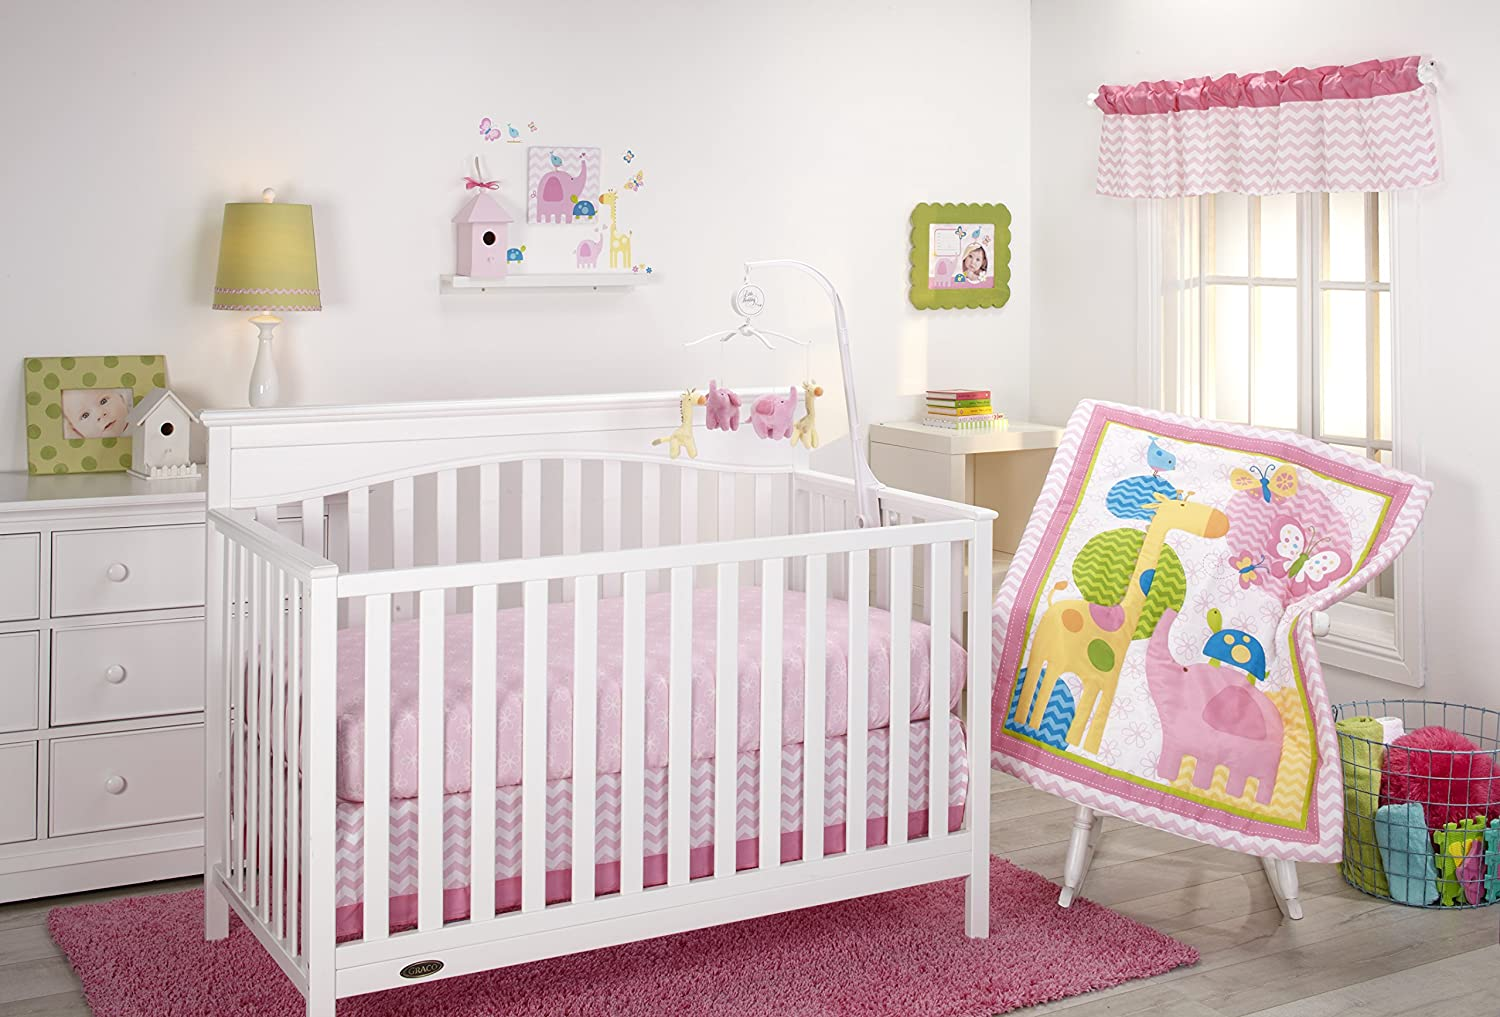 Little Bedding by NoJo 3 Little Monkeys 10 Piece Crib Bedding Set, Girl 7374660